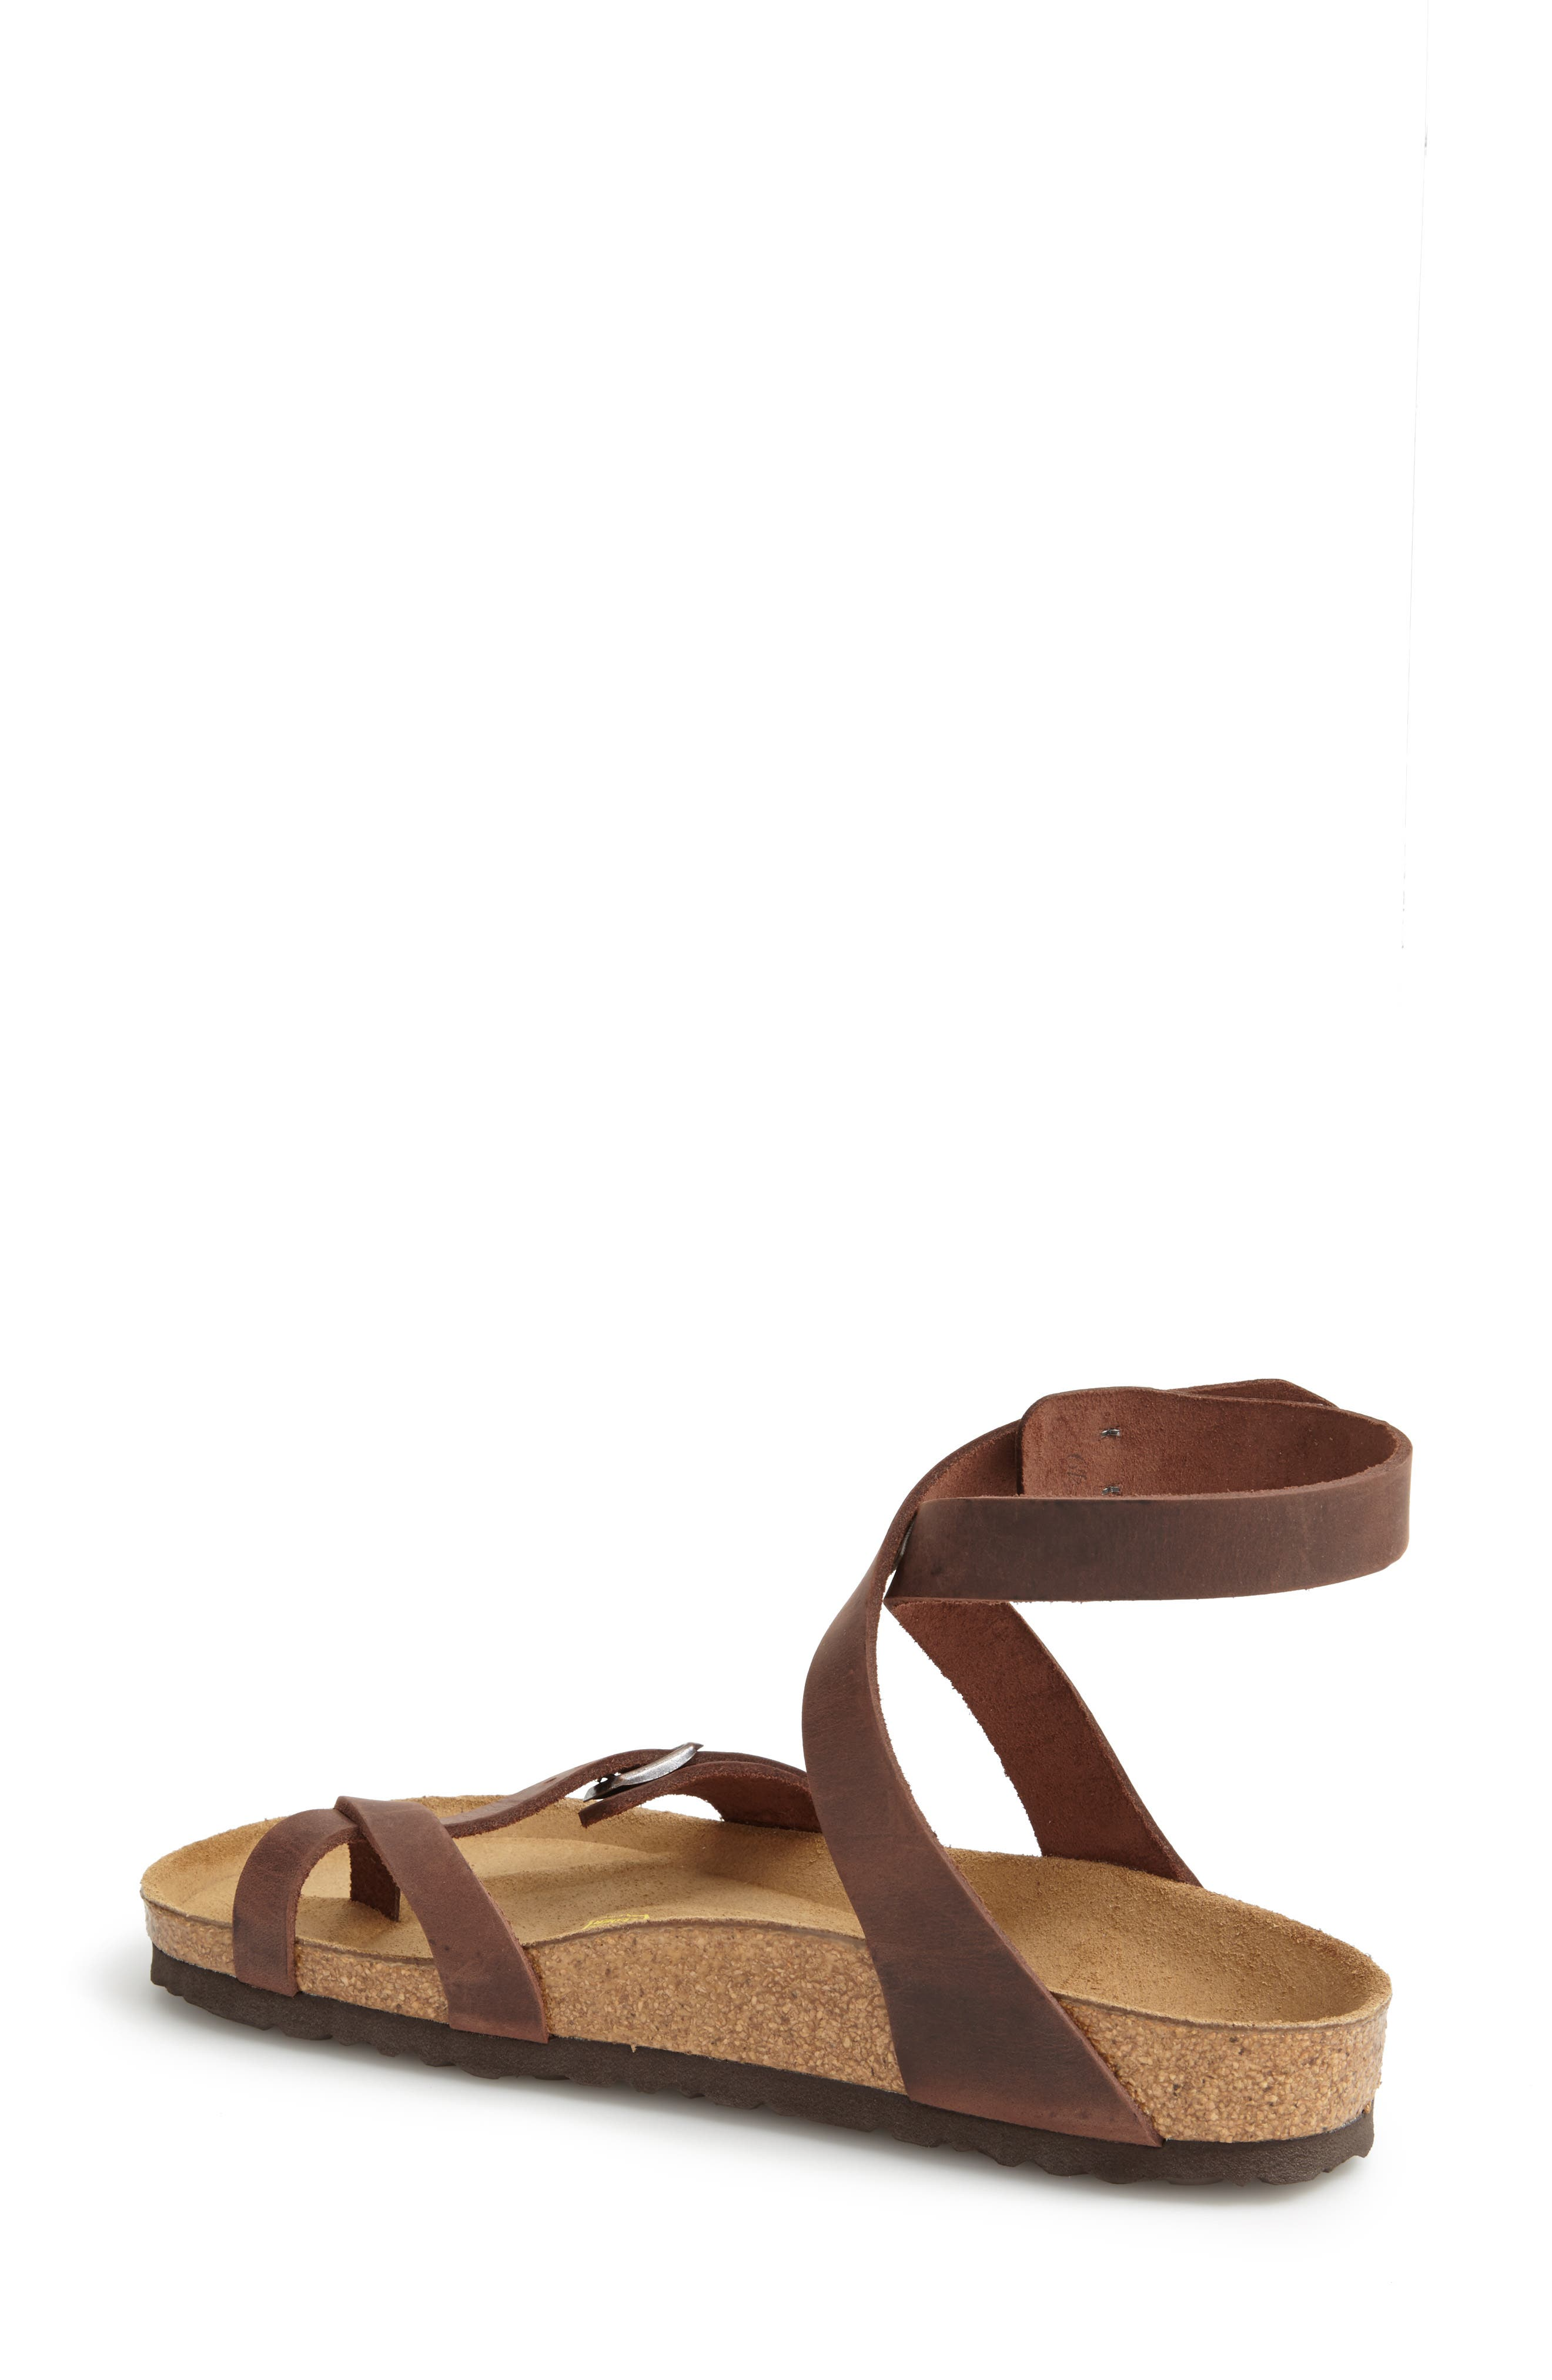 'Yara' Sandal,                             Main thumbnail 1, color,                             YARA HABANA OILED LEATHER